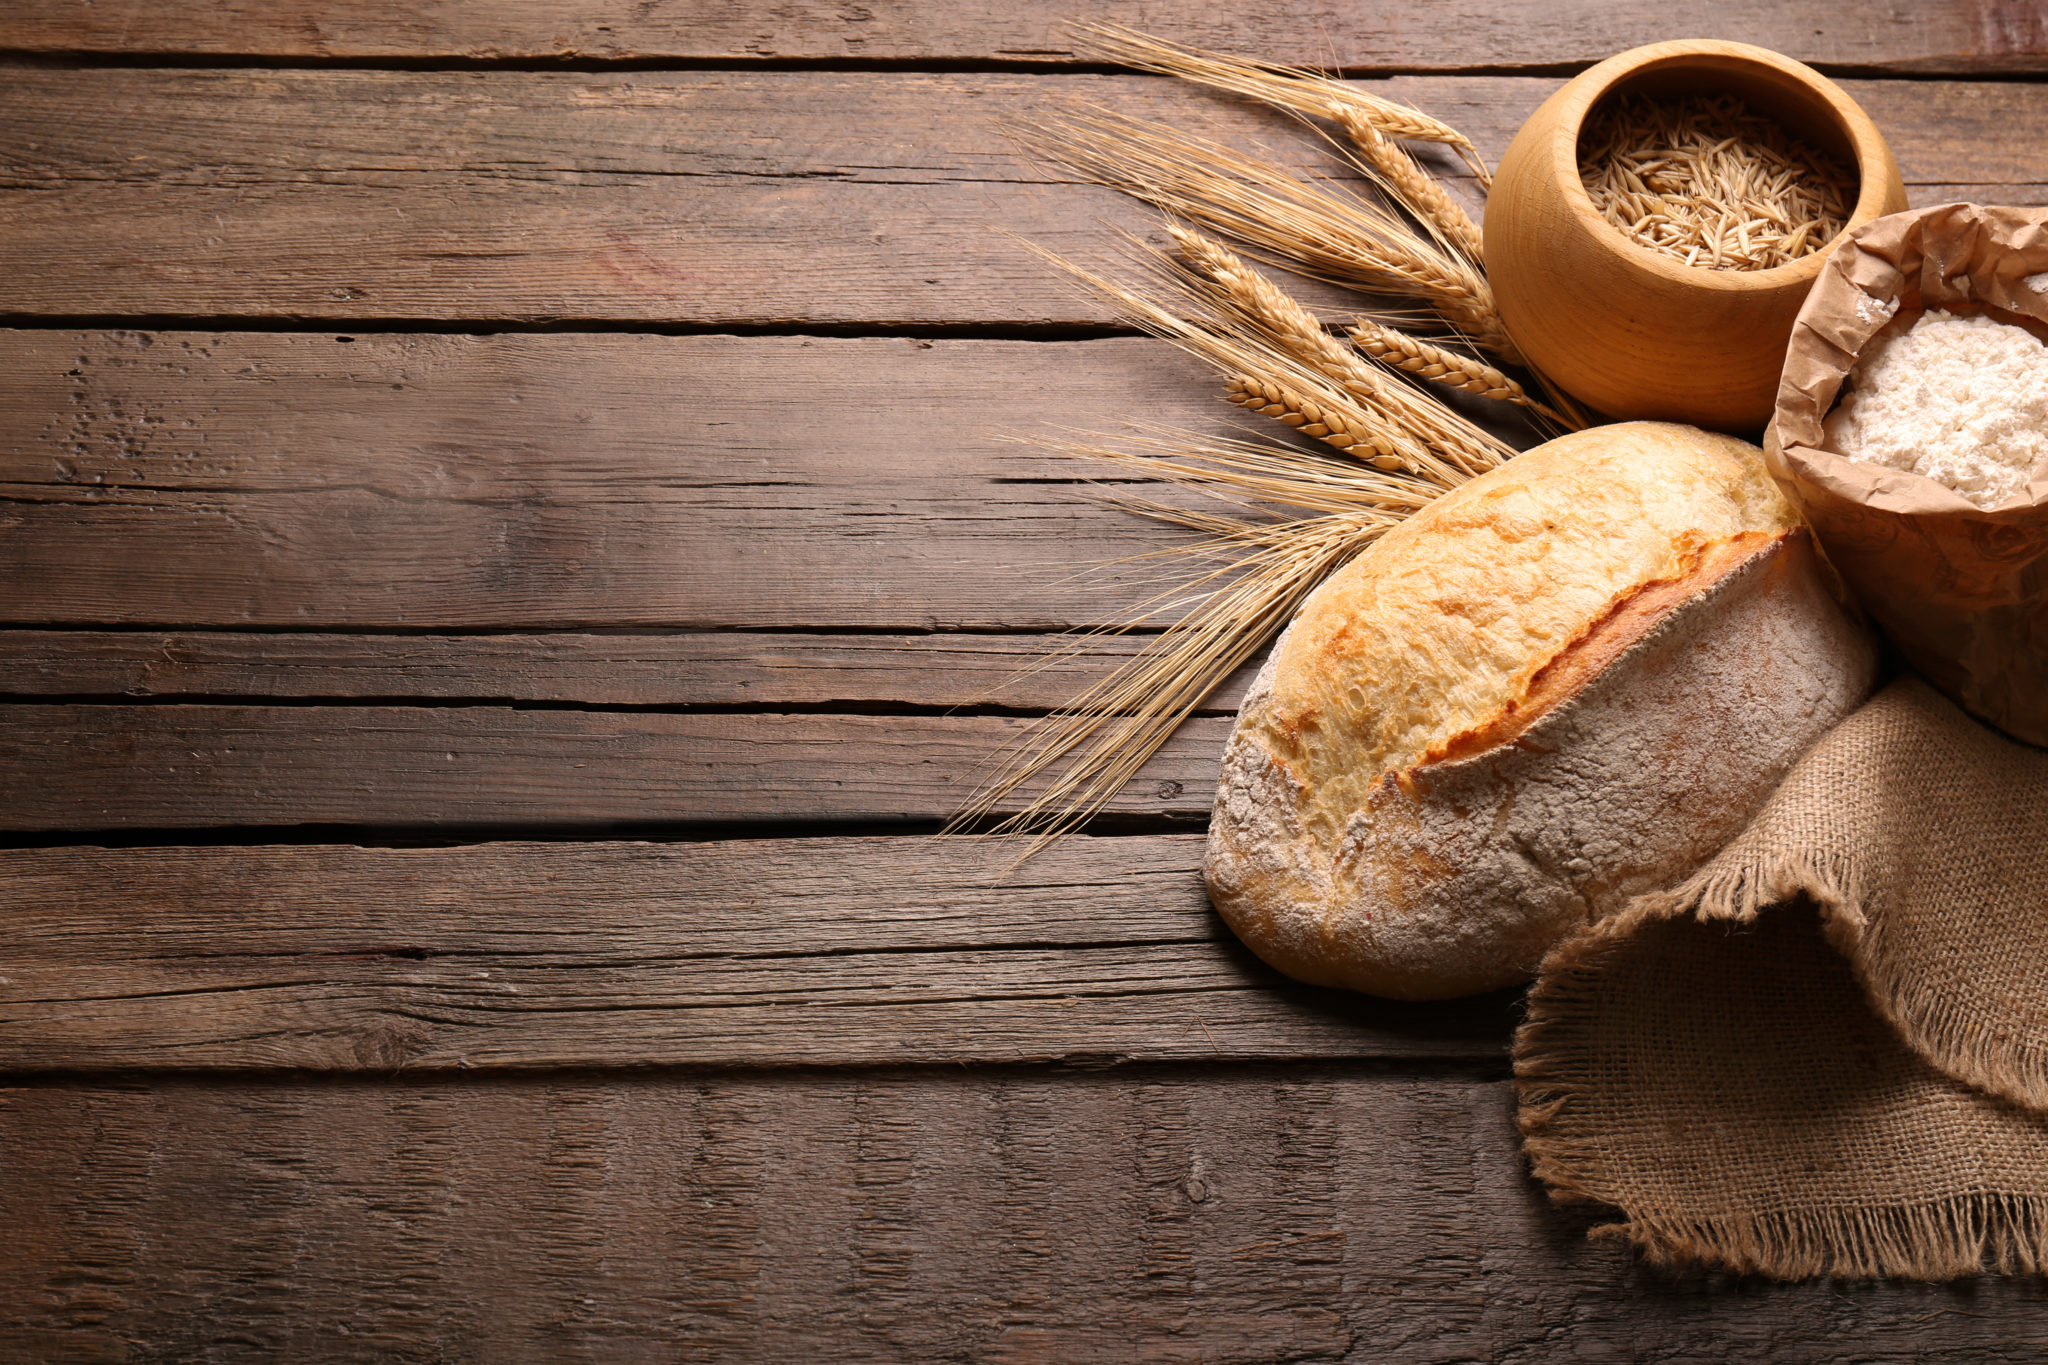 Alternative Treatments And Disorders Related To Gluten 1